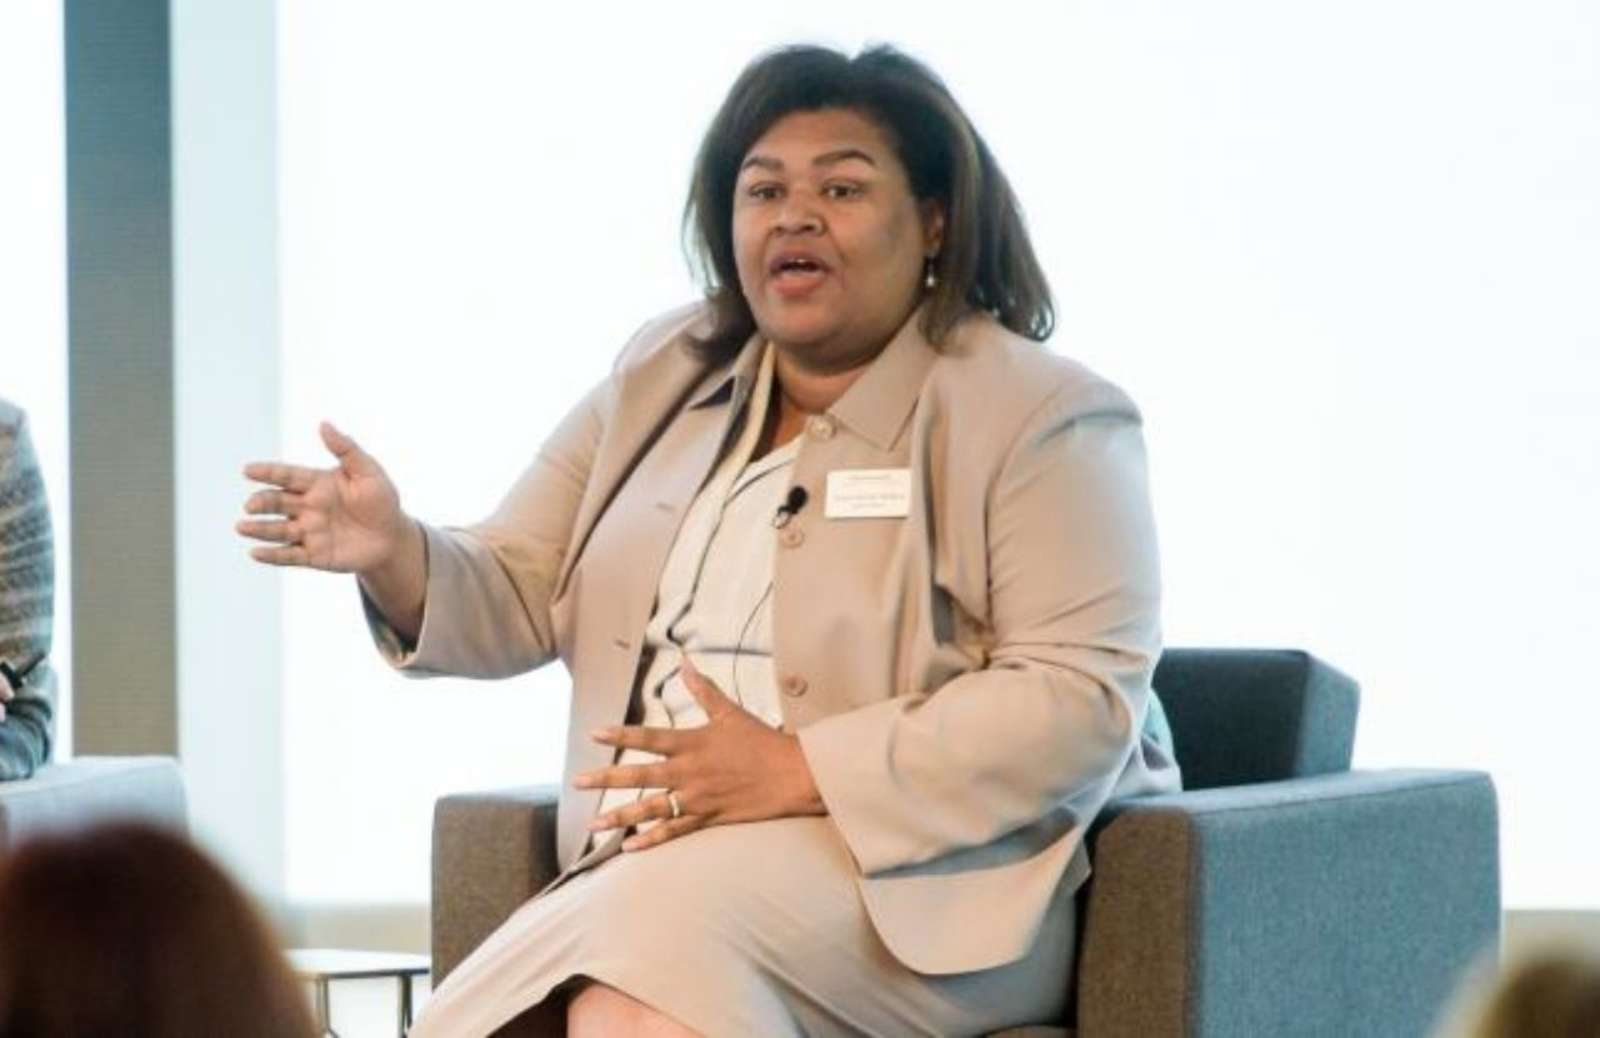 iRelaunch team member Cheryl McGee Wallace gesturing while speaking